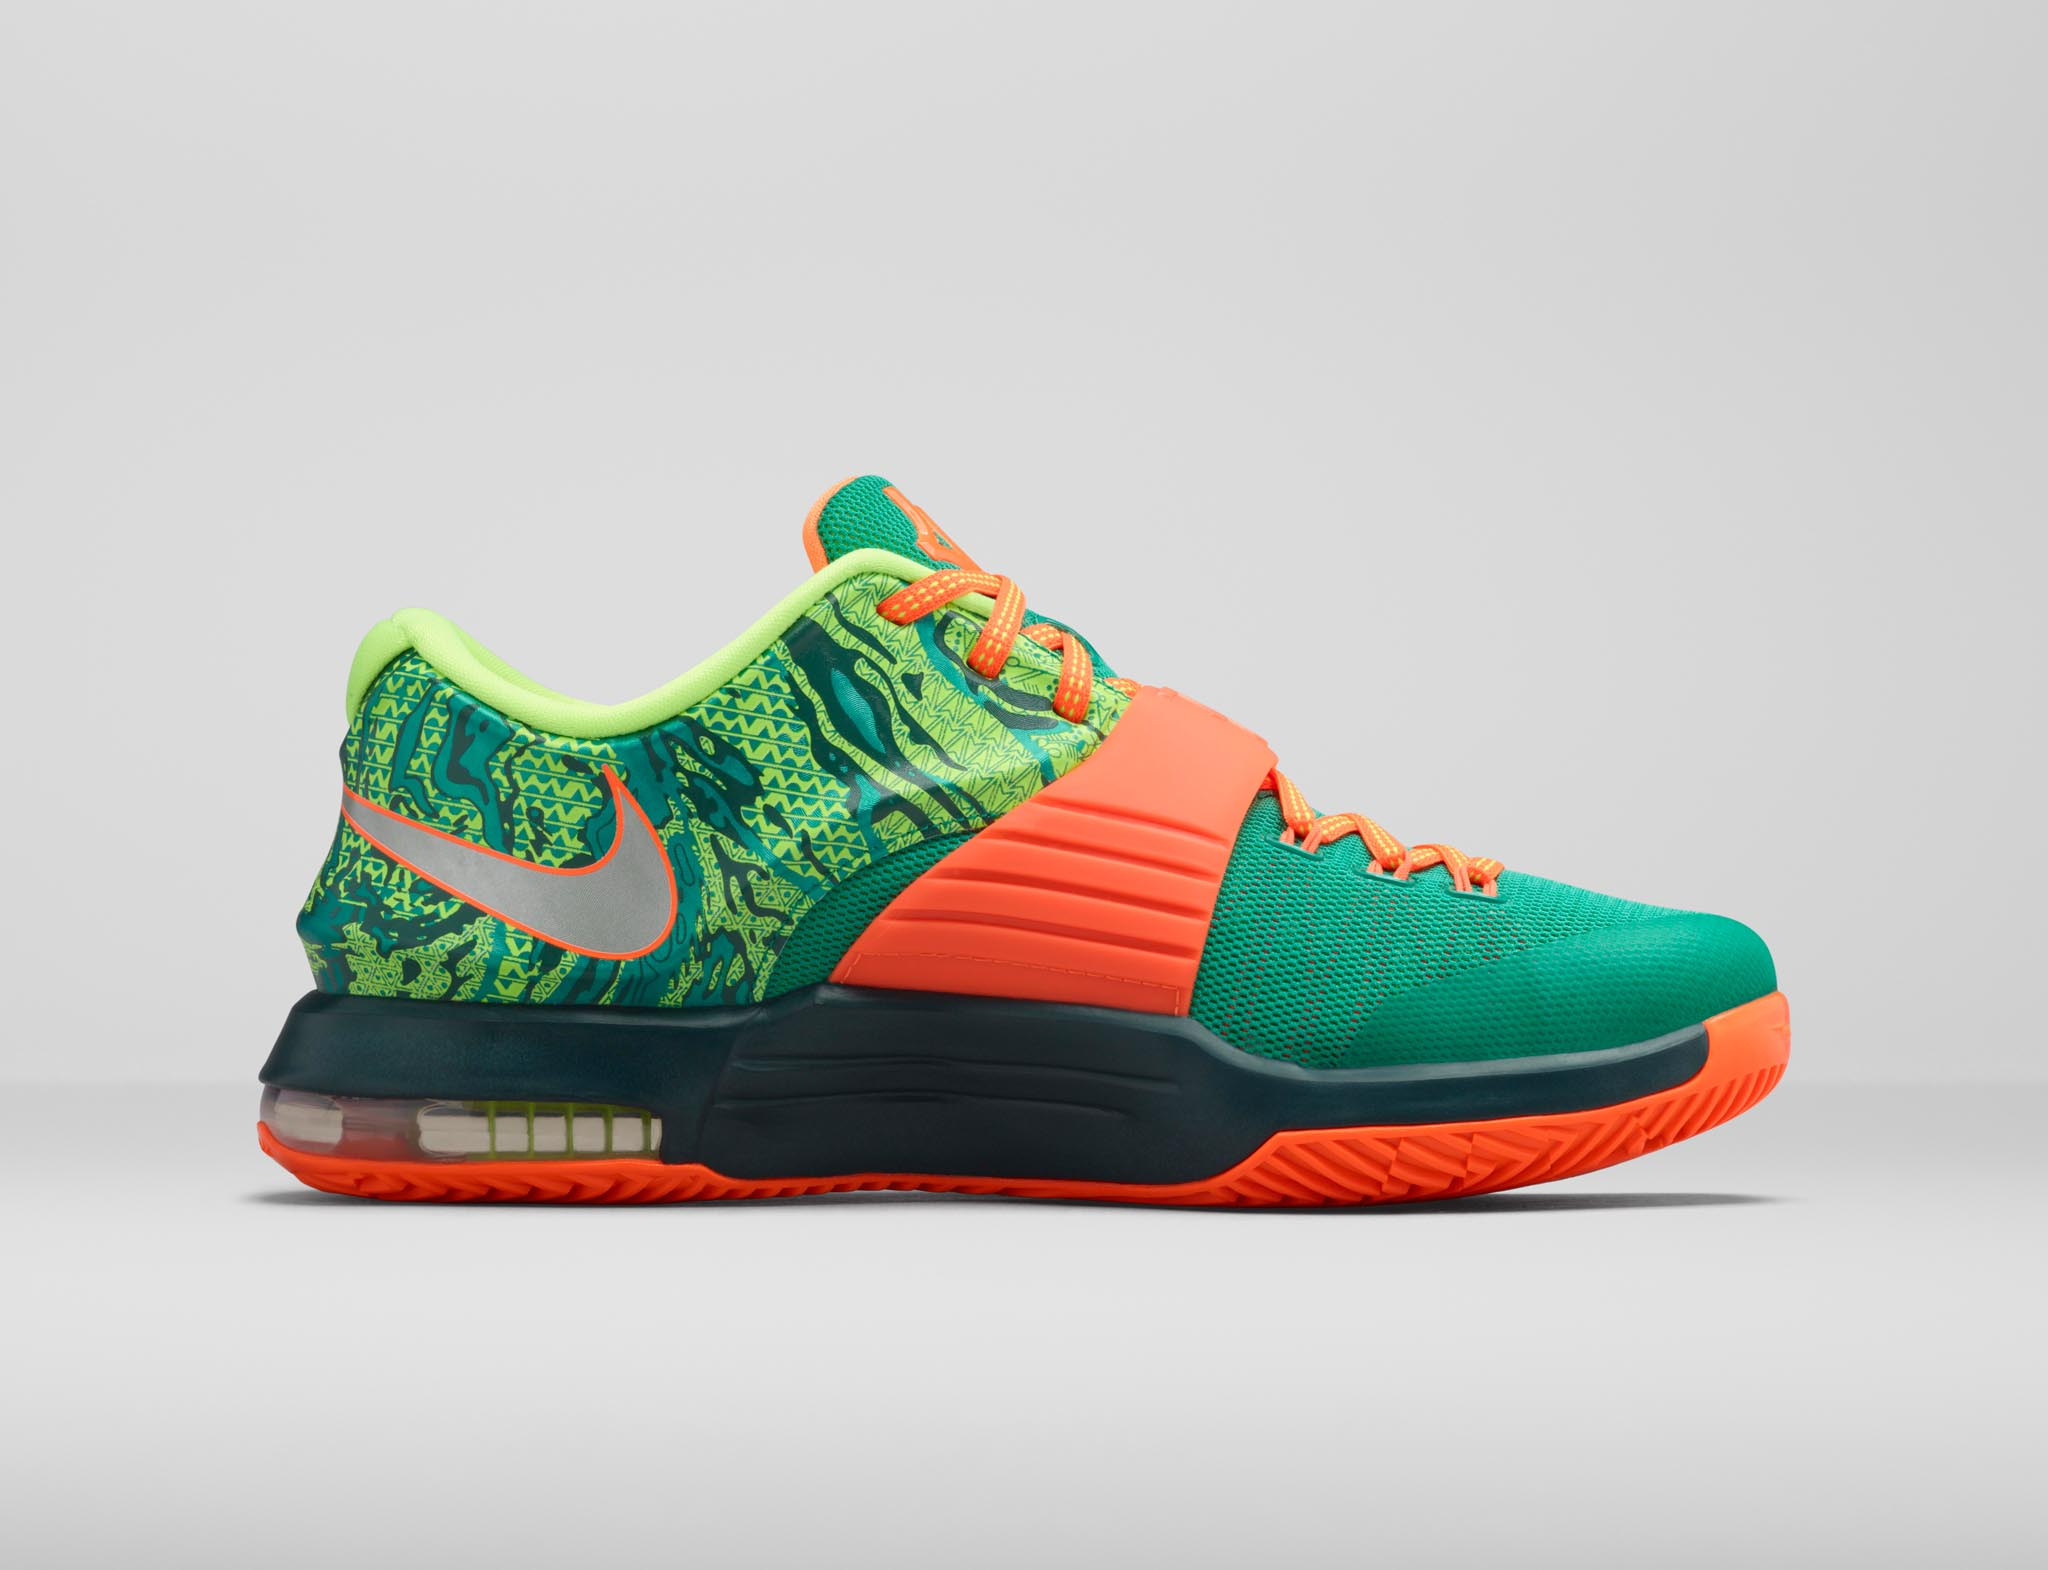 new style ebf51 50c07 ... low price kd7 weatherman shoe brings heat to the forecast nike news  a9cfc bd108